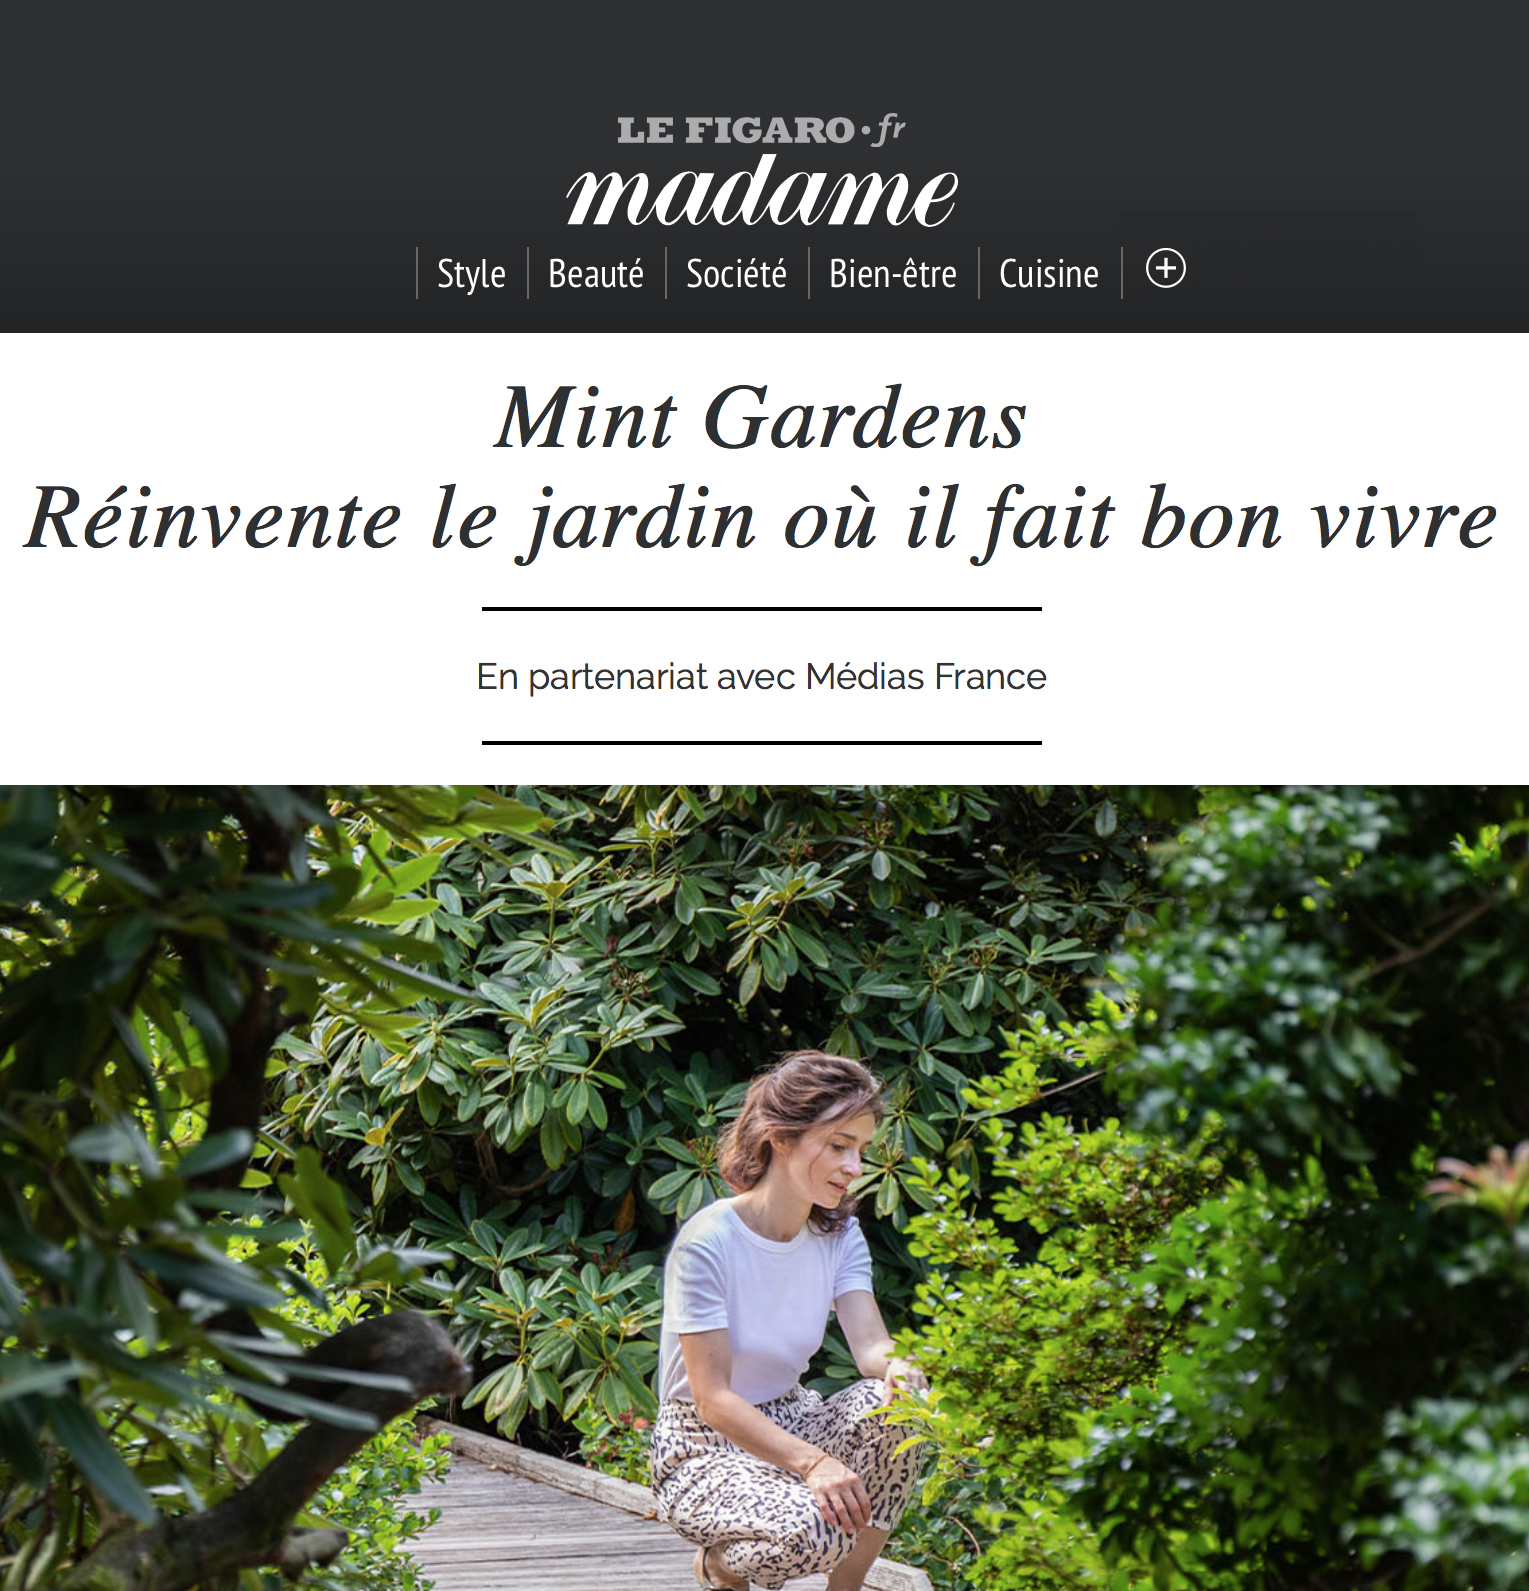 Mint Gardens - Article Madame Figaro